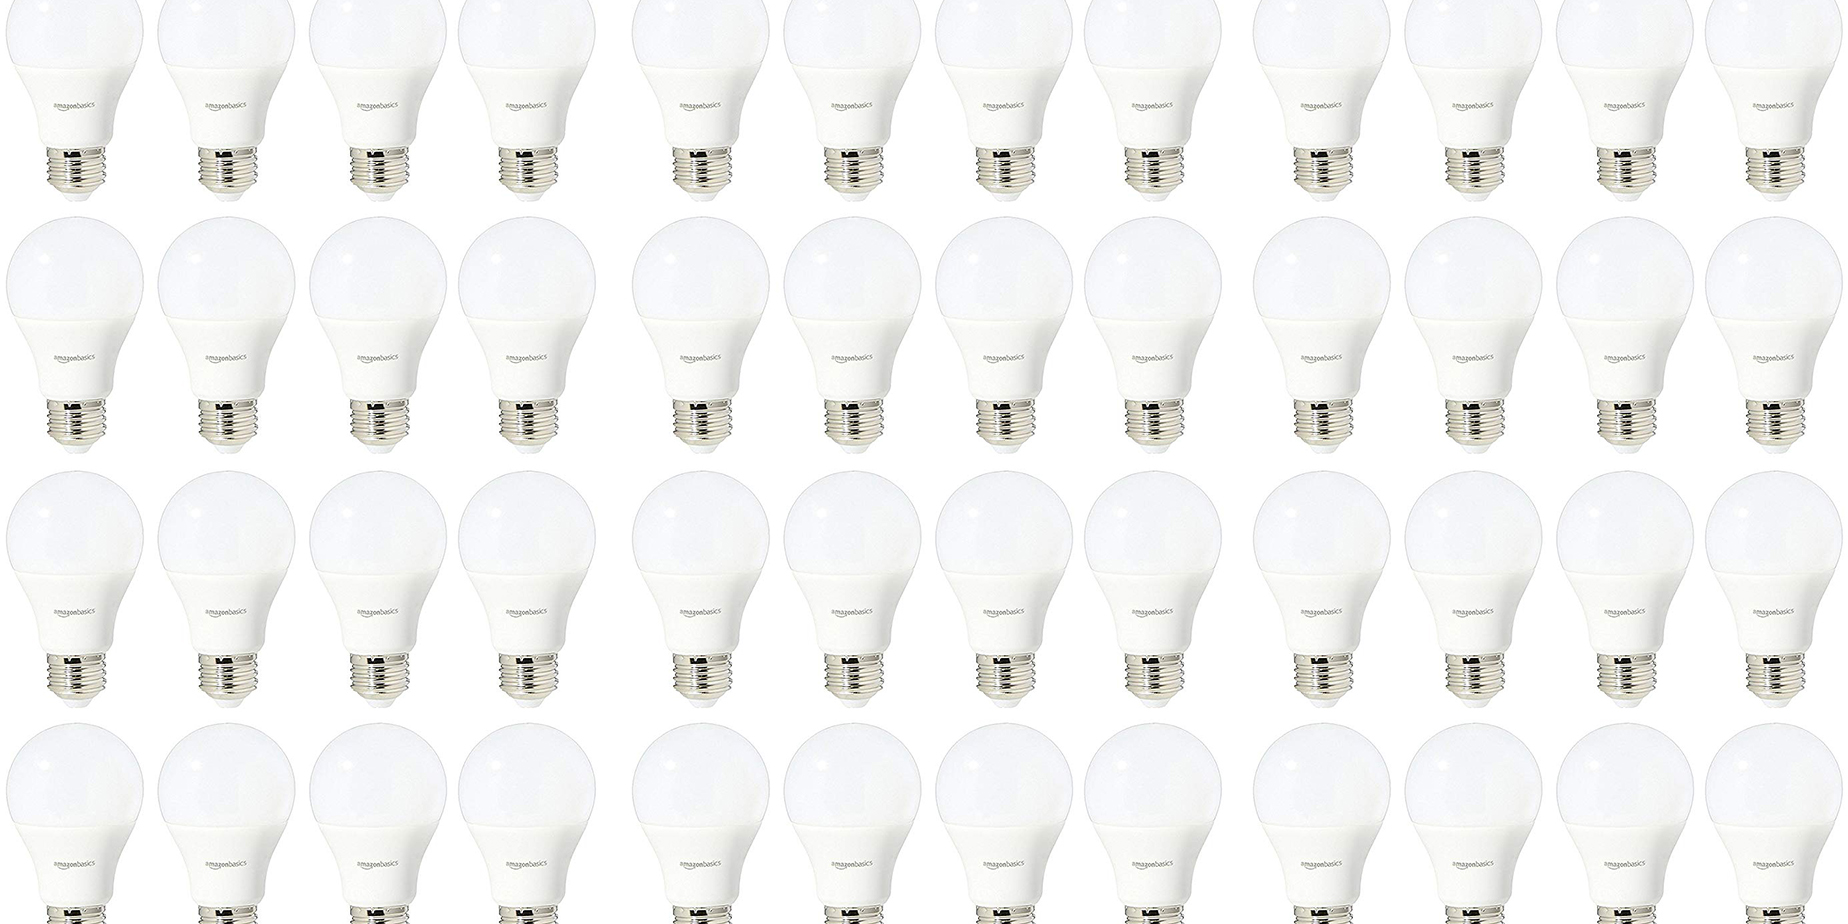 Amazon has a 16-pack of 75W Dimmable LED Bulbs for $52